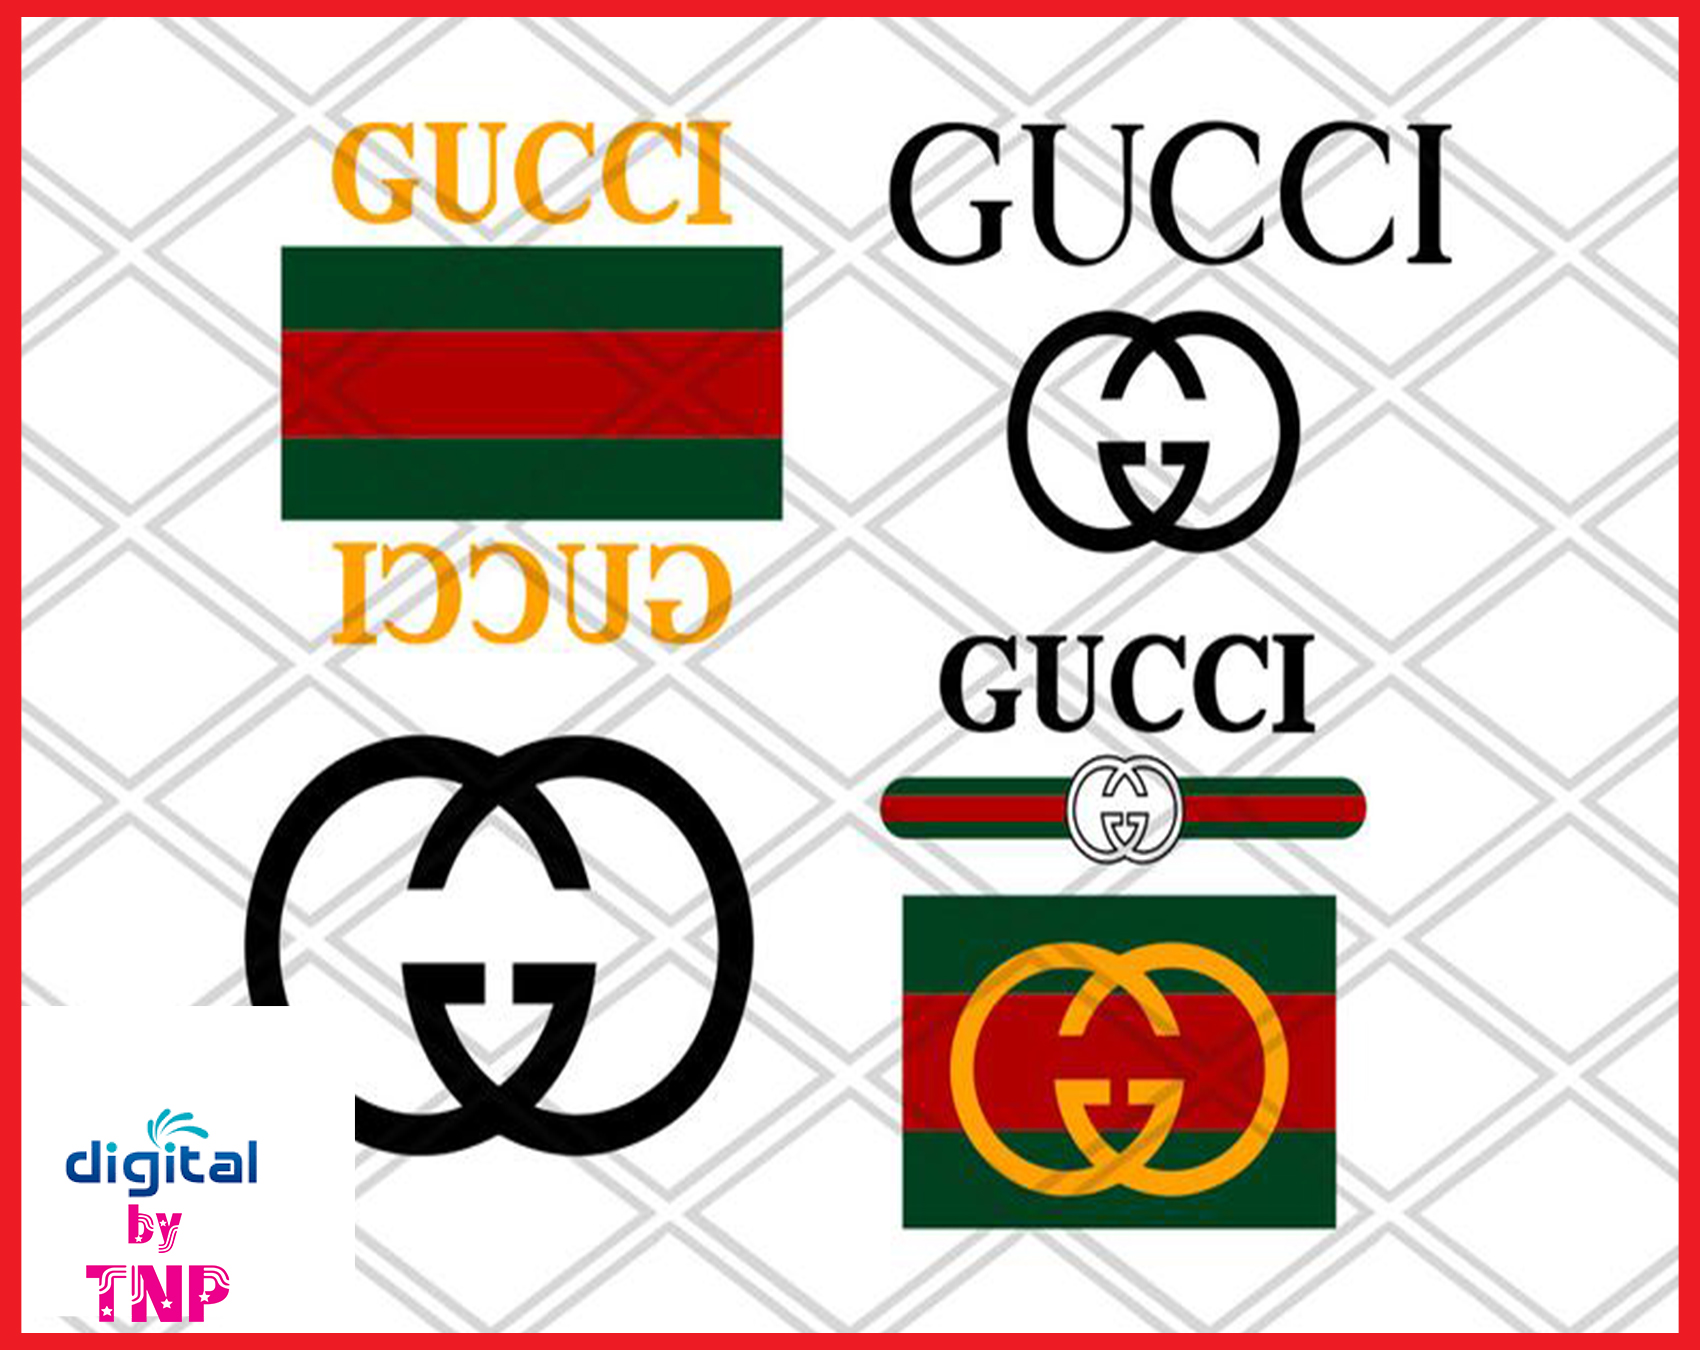 Chanel Gucci Svg Gucci Logo Svg Lacoste Svg Givenchy Svg Louis Vuitton Svg Silhouette Digital Download Customer Satisfaction Is Our Priority